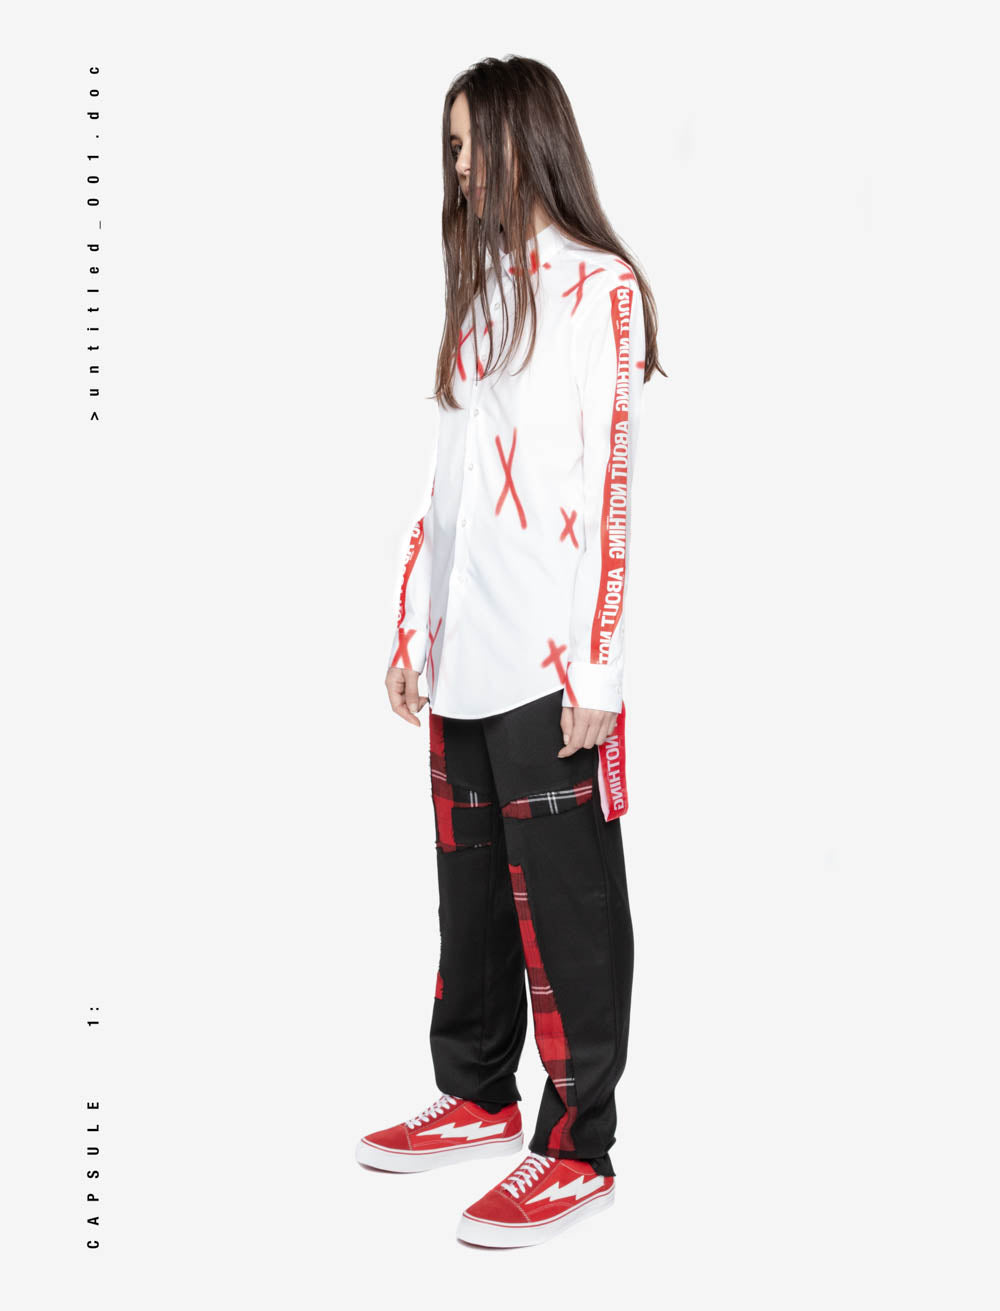 'X' SILK SCREEN SHIRT / RED TAPE SLEEVE